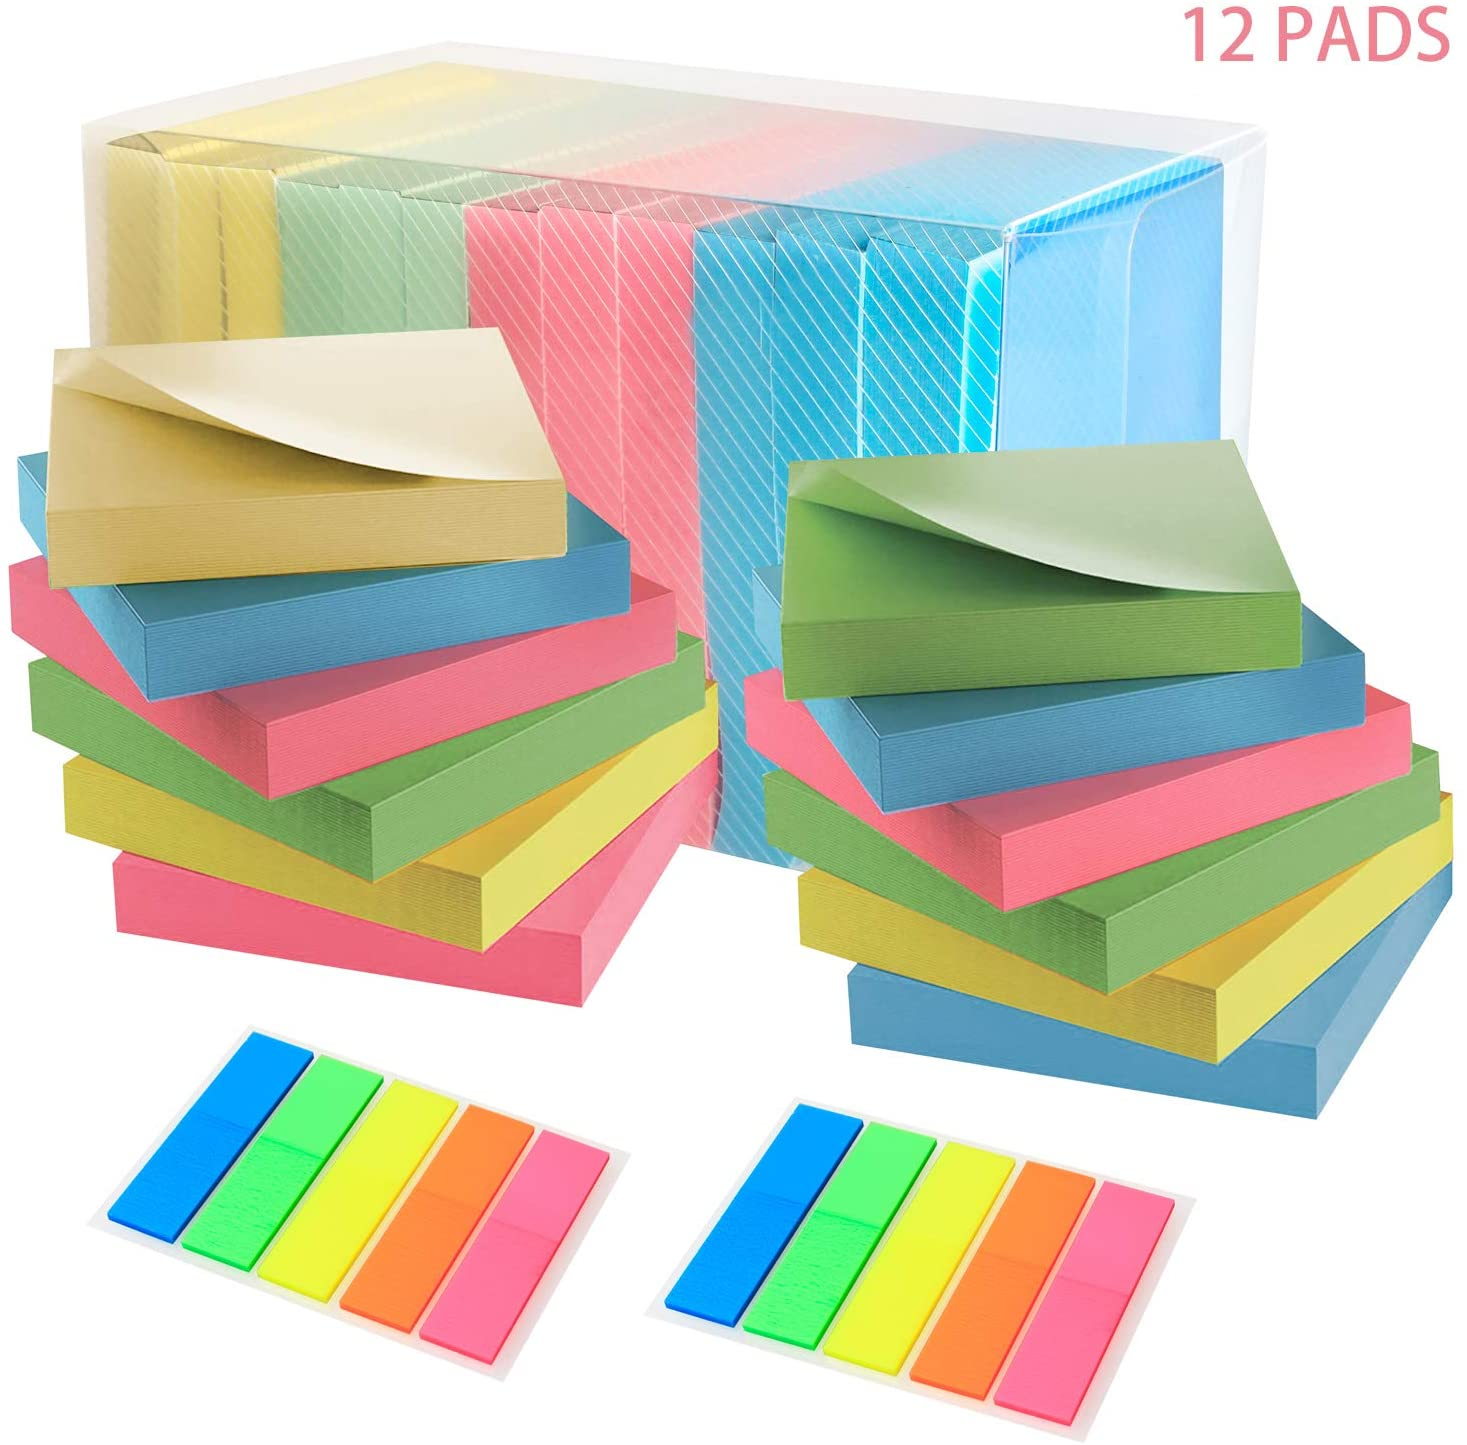 Self-Stick Notes,Sticky Notes 3x3 Bright Colorful Stickies 12 Pads (4 Colors) and Send 2 Pads Page Markers Great for School, Office, Home, Planner Notebook